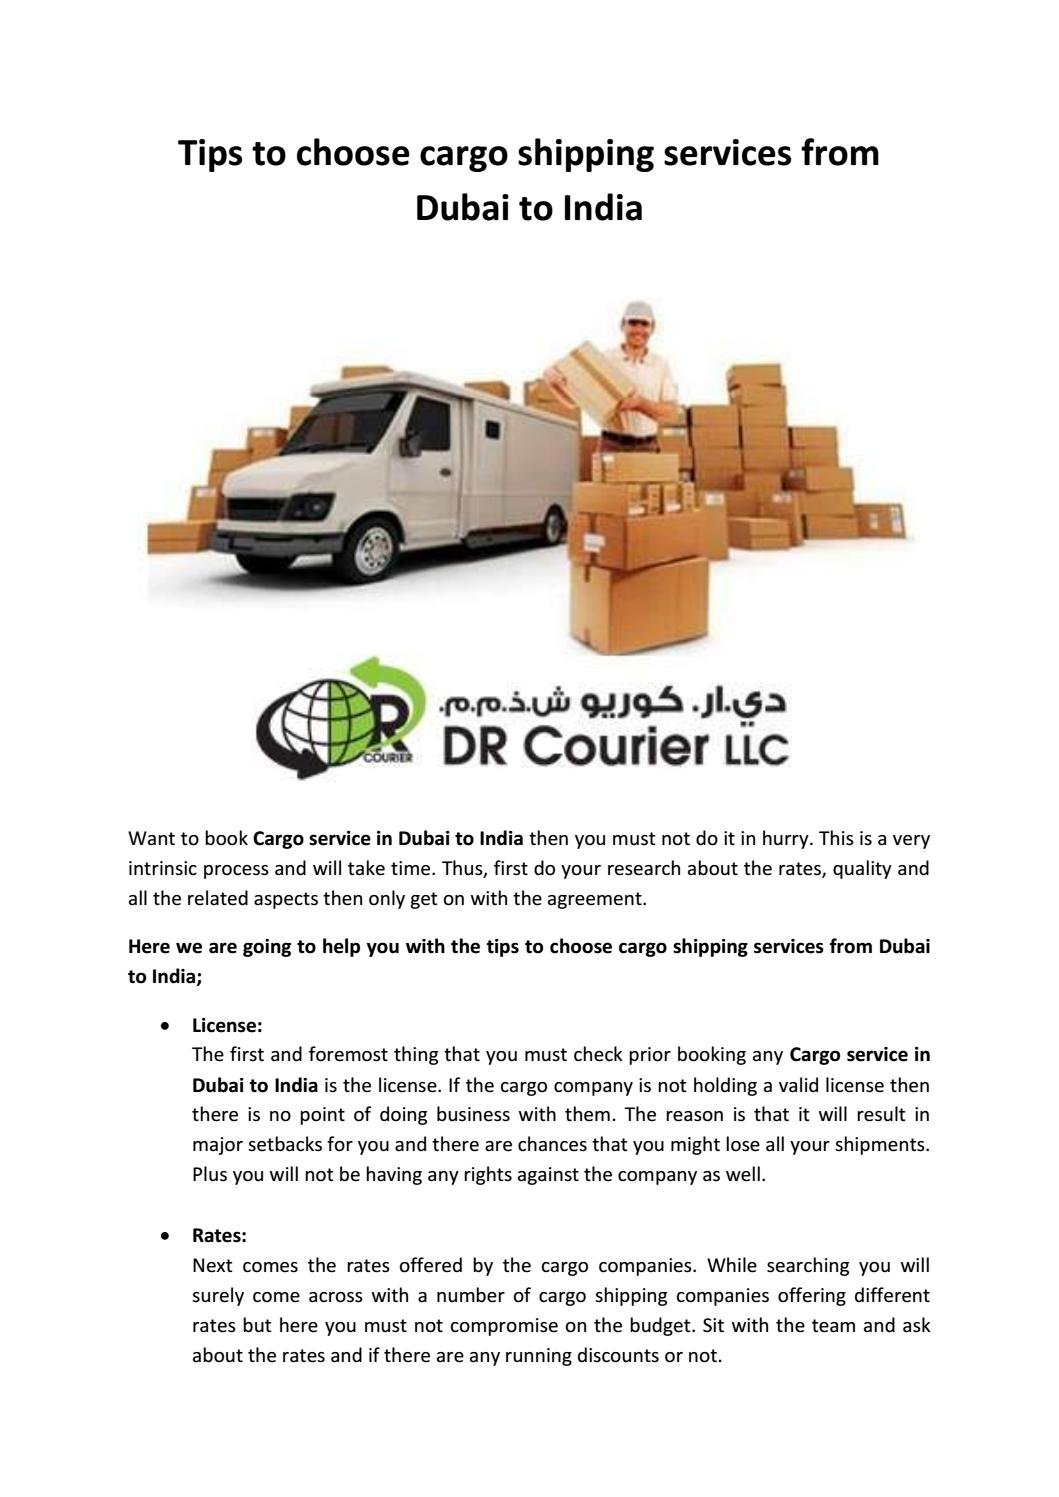 Tips to choose cargo shipping services from Dubai to India by dr